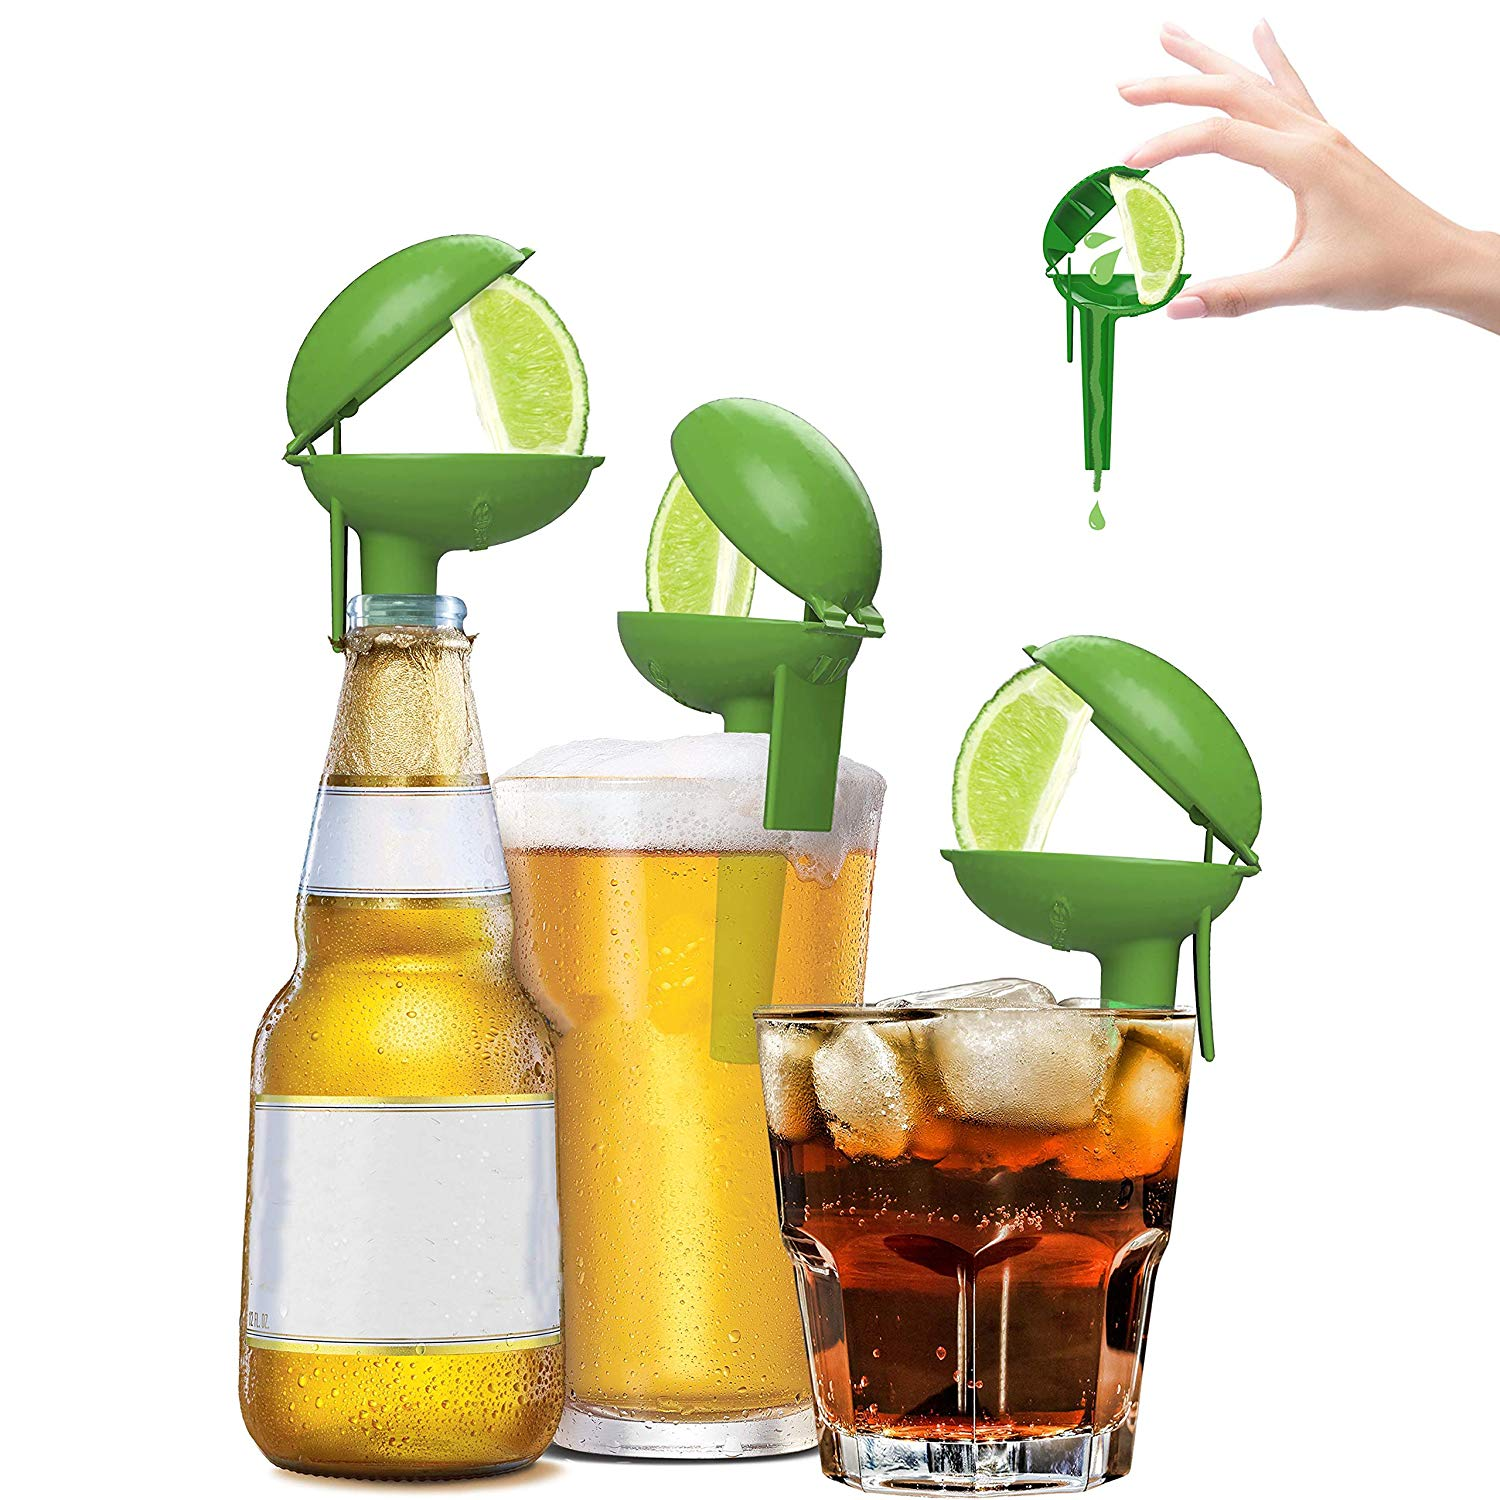 Image result for HeadLimes Clip-On Citrus Squeezer